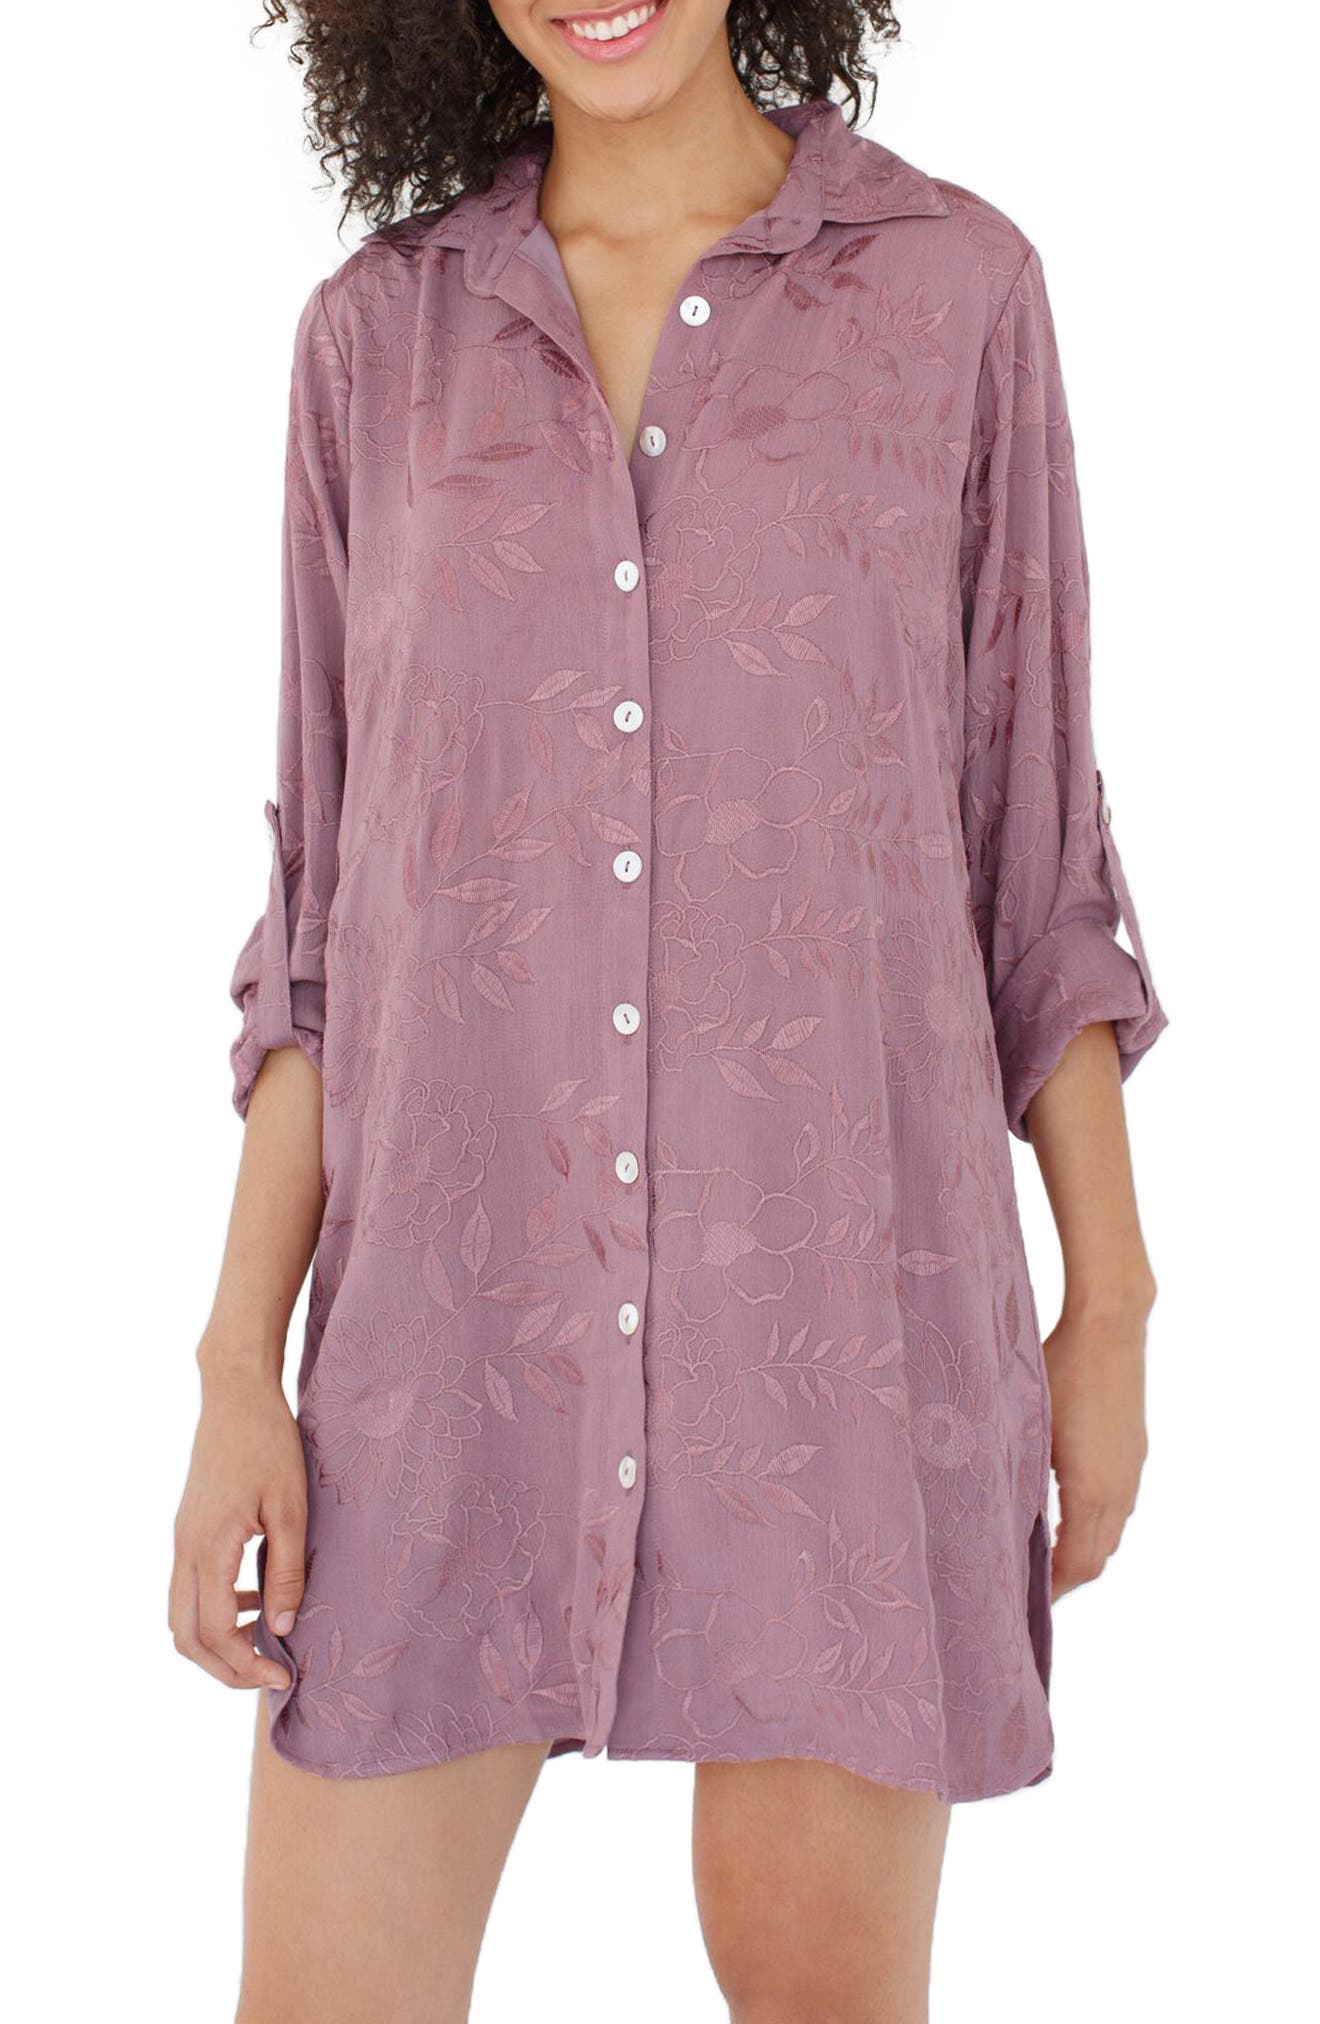 Floral Embroidered Nightshirt,                         Main,                         color, 510